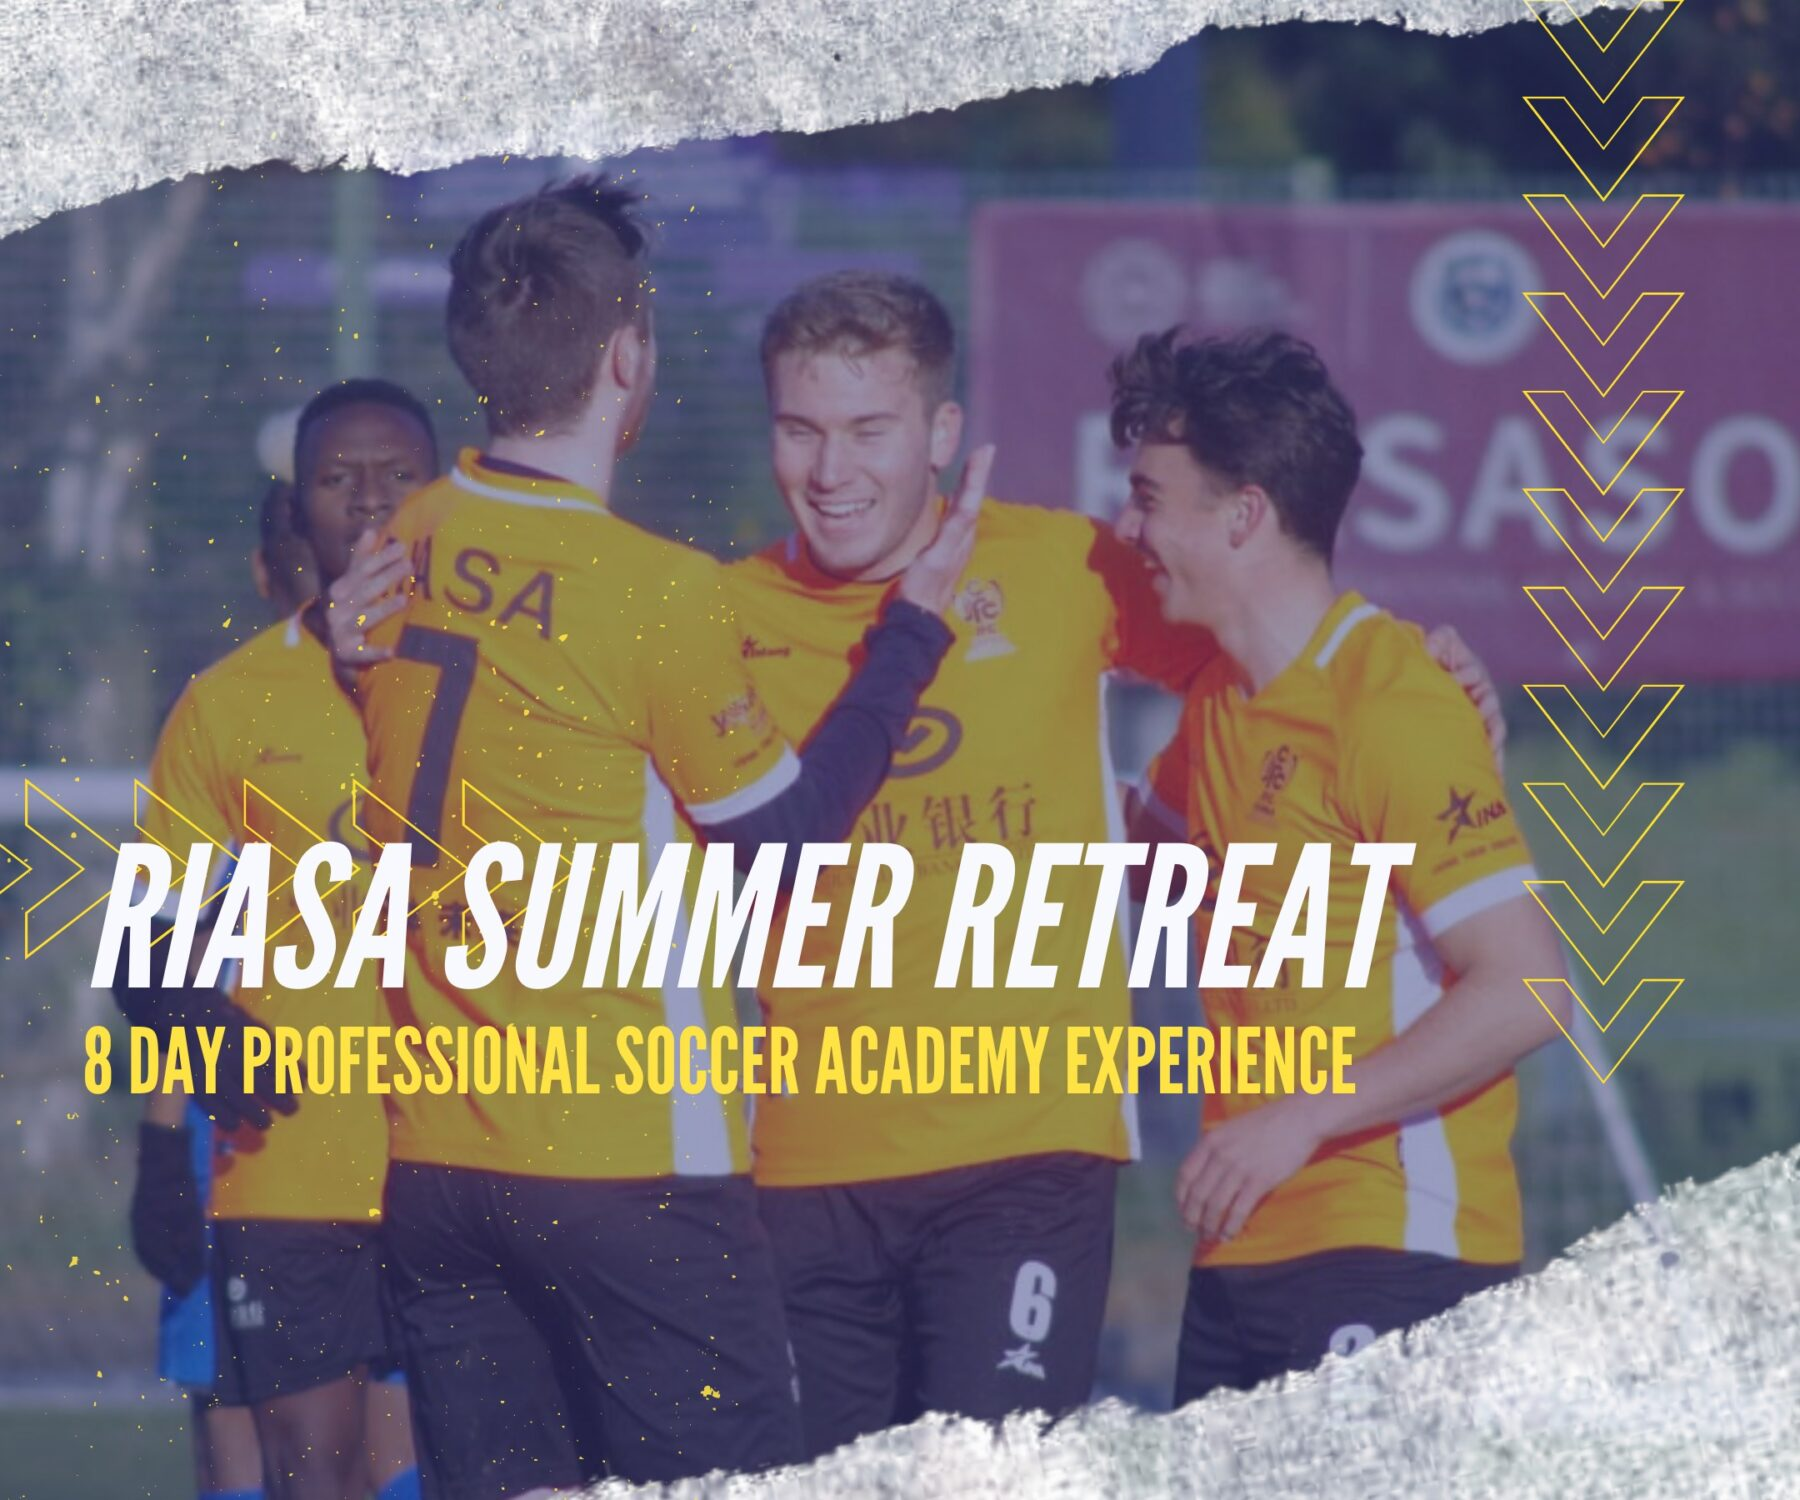 The RIASA UK Summer Retreat Camp is back for 2021!